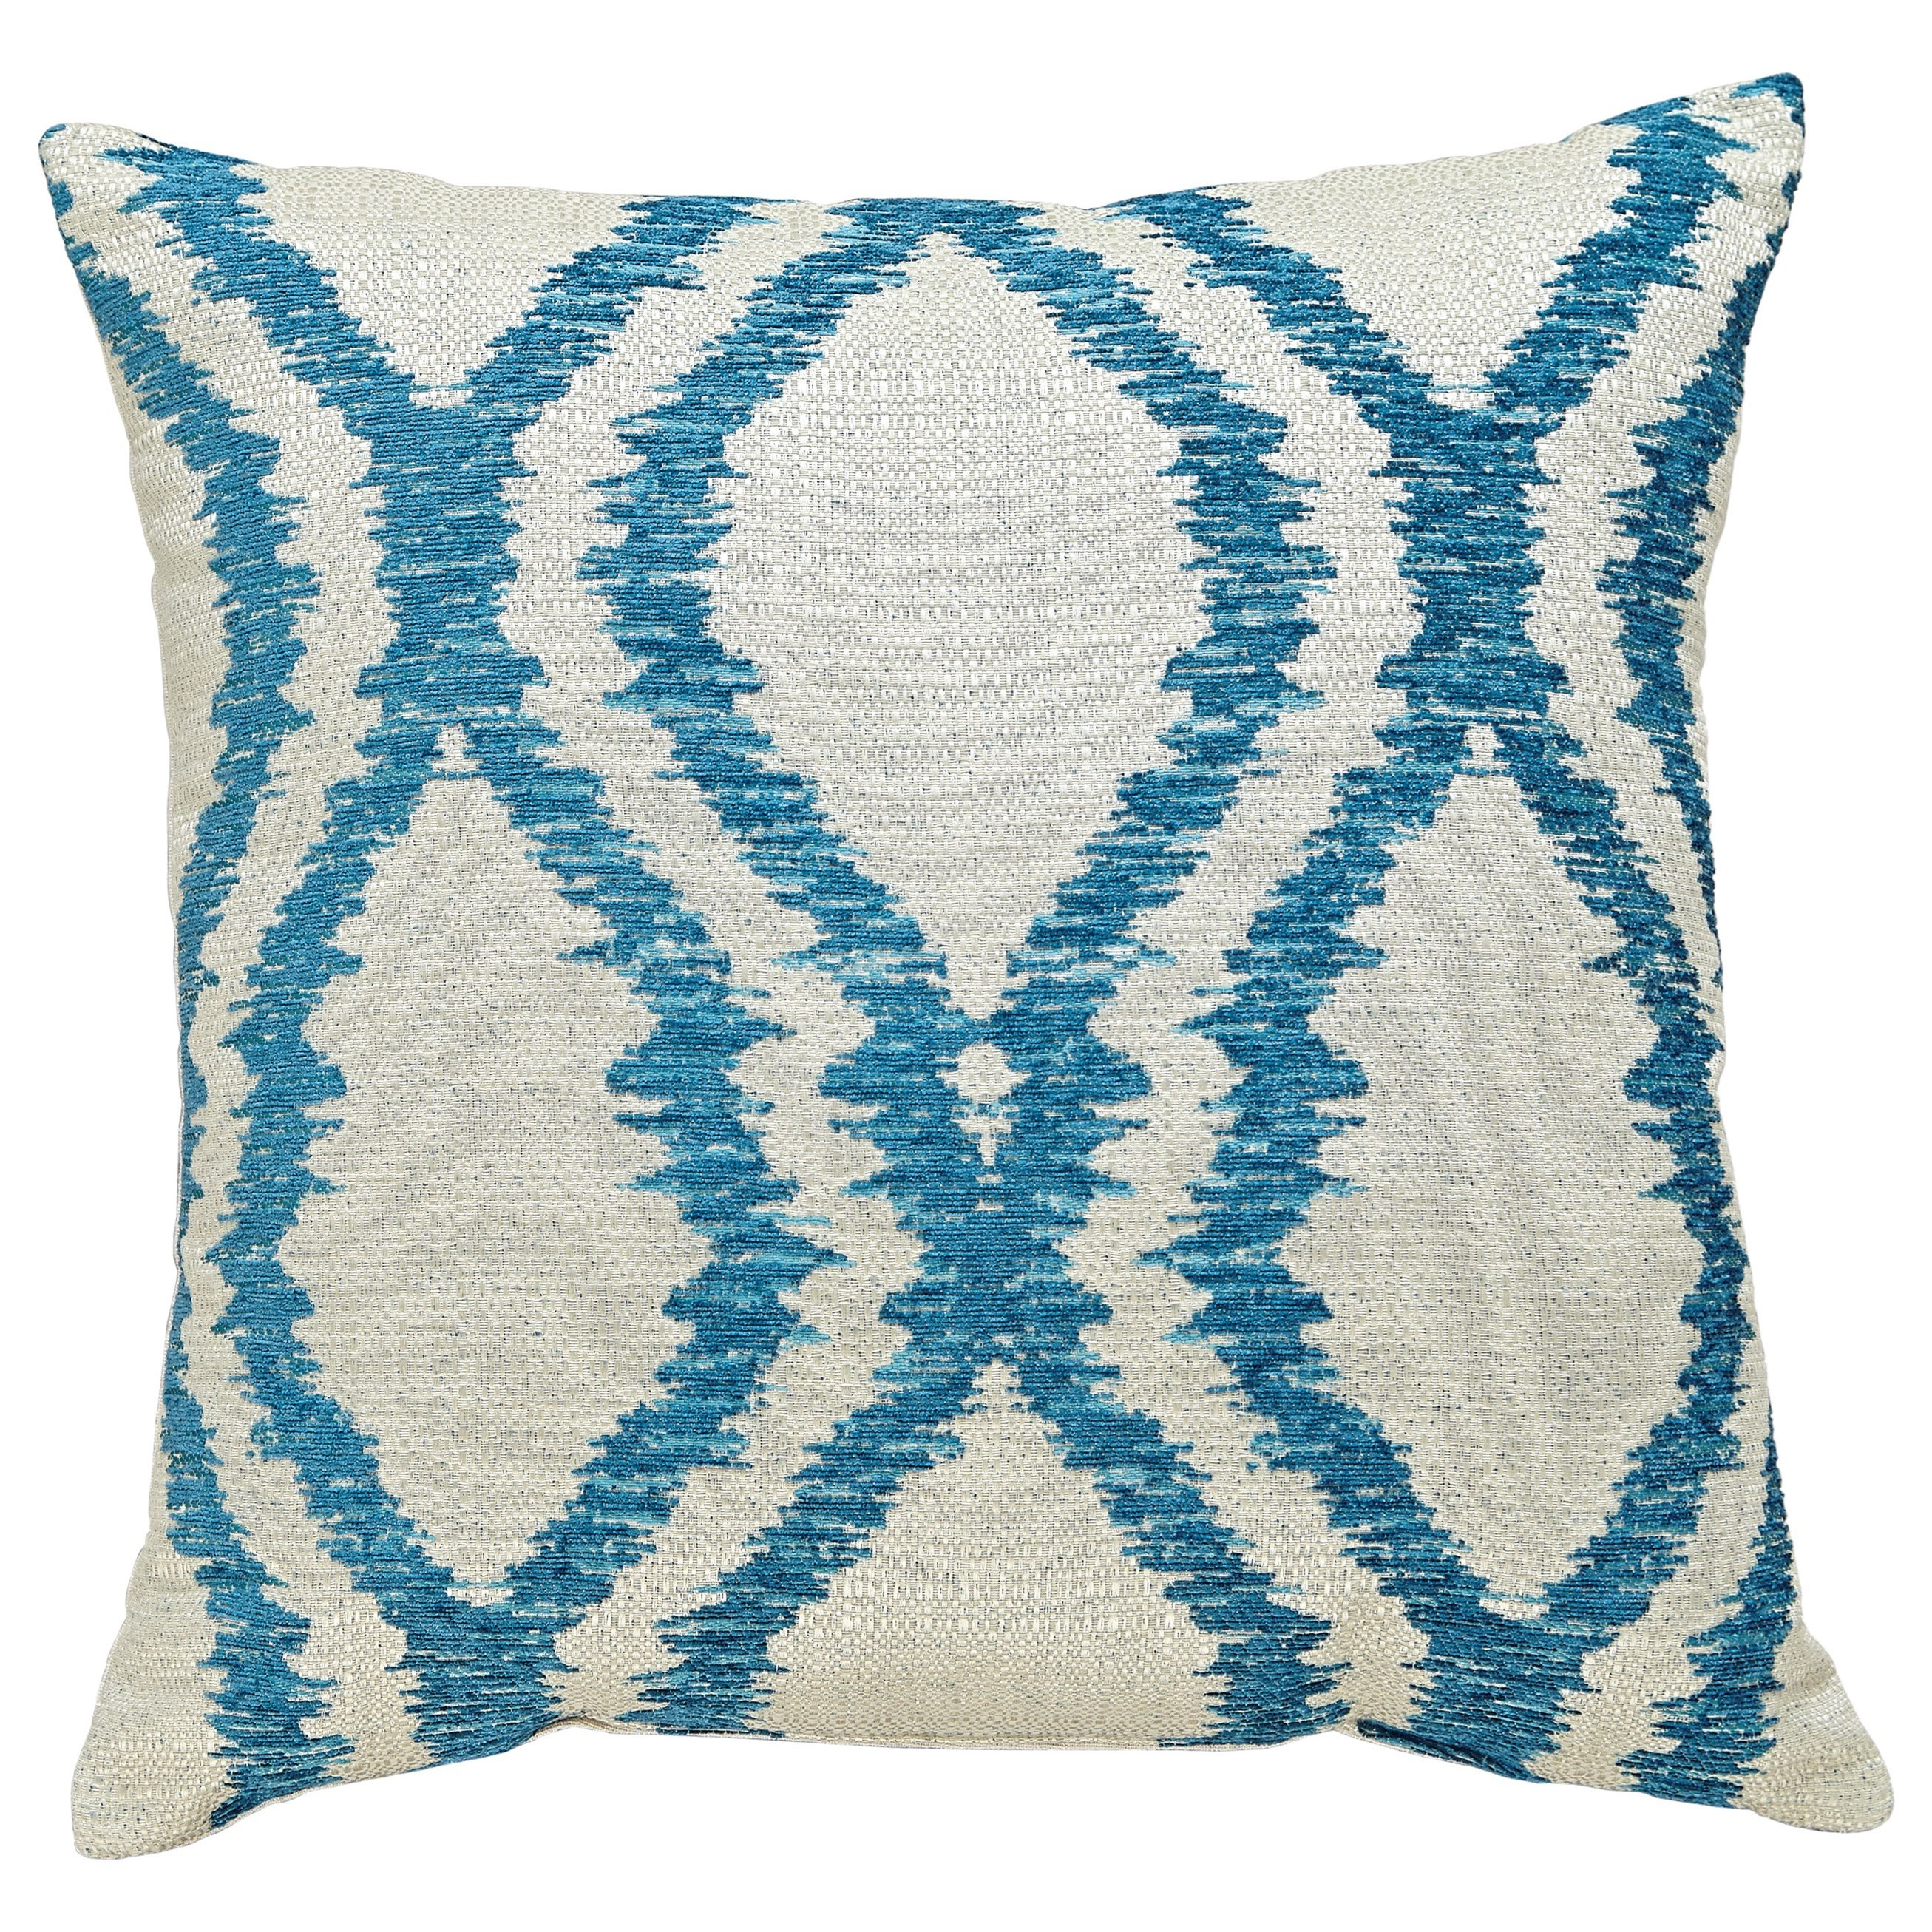 Signature Design by Ashley Pillows Estelle - Turquoise Pillow - Item Number: A1000493P